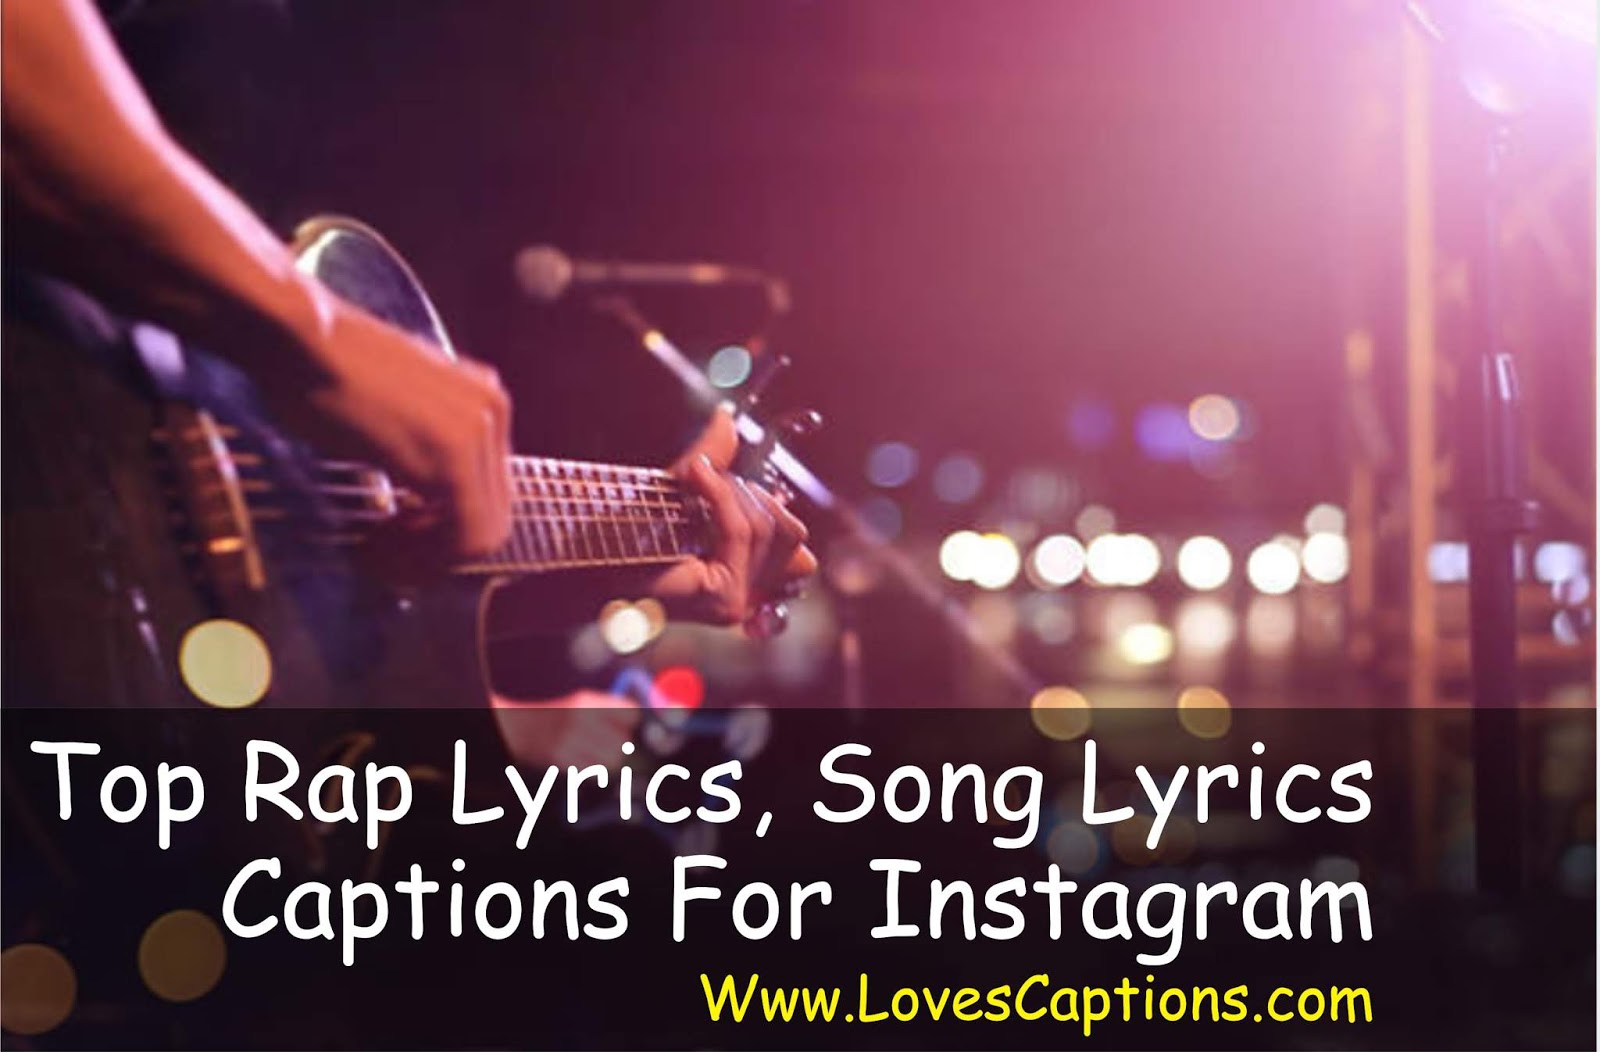 100 Songs Lyrics Instagram Captions For Selfies Pictures 2018 Rap